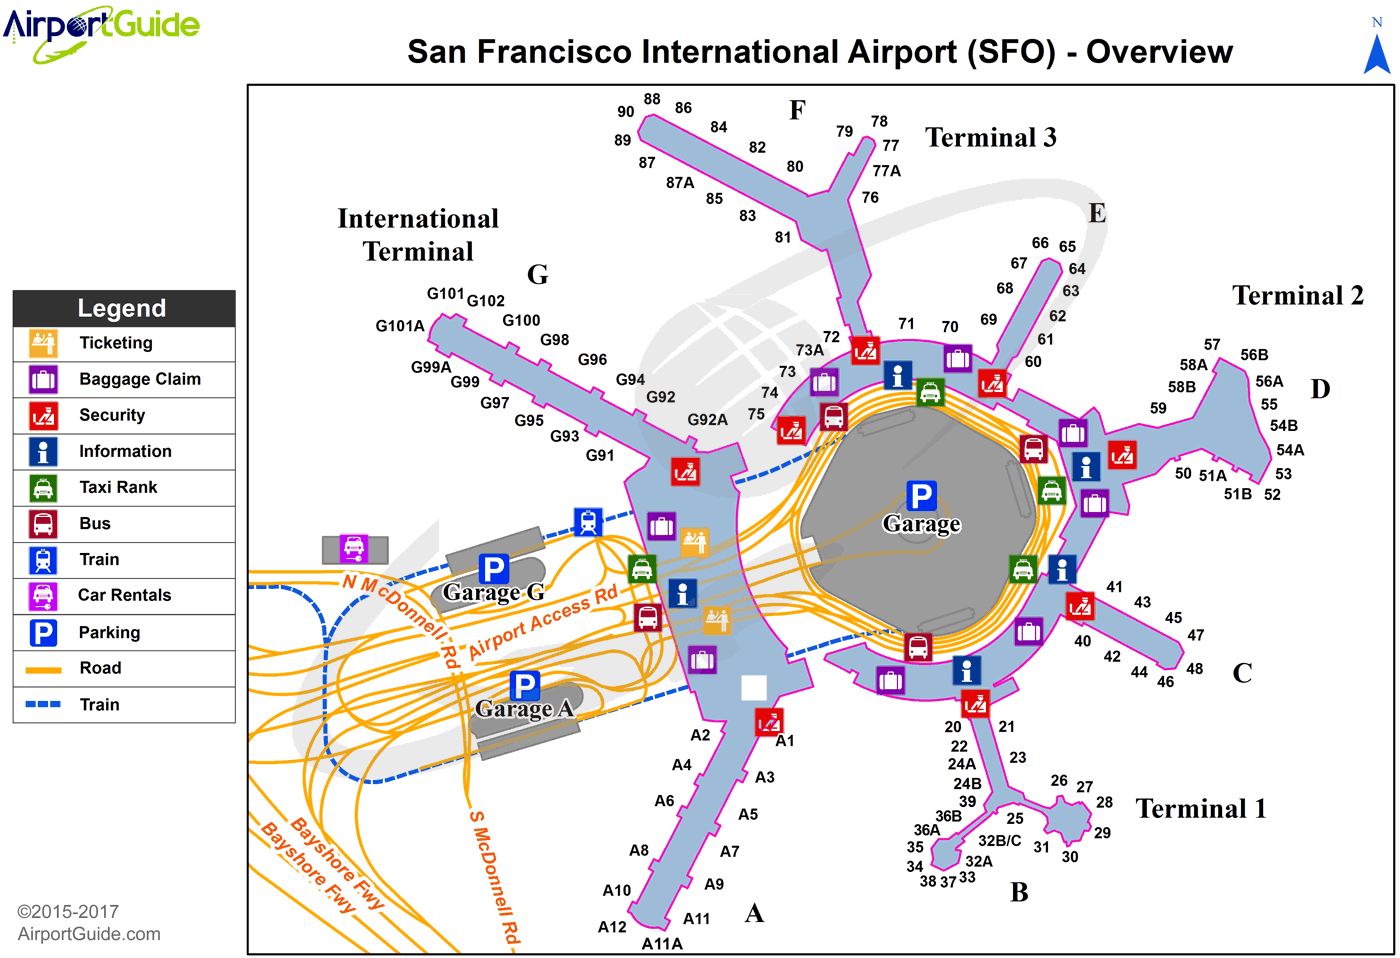 San Francisco - San Francisco International (SFO) Airport Terminal Map - Overview